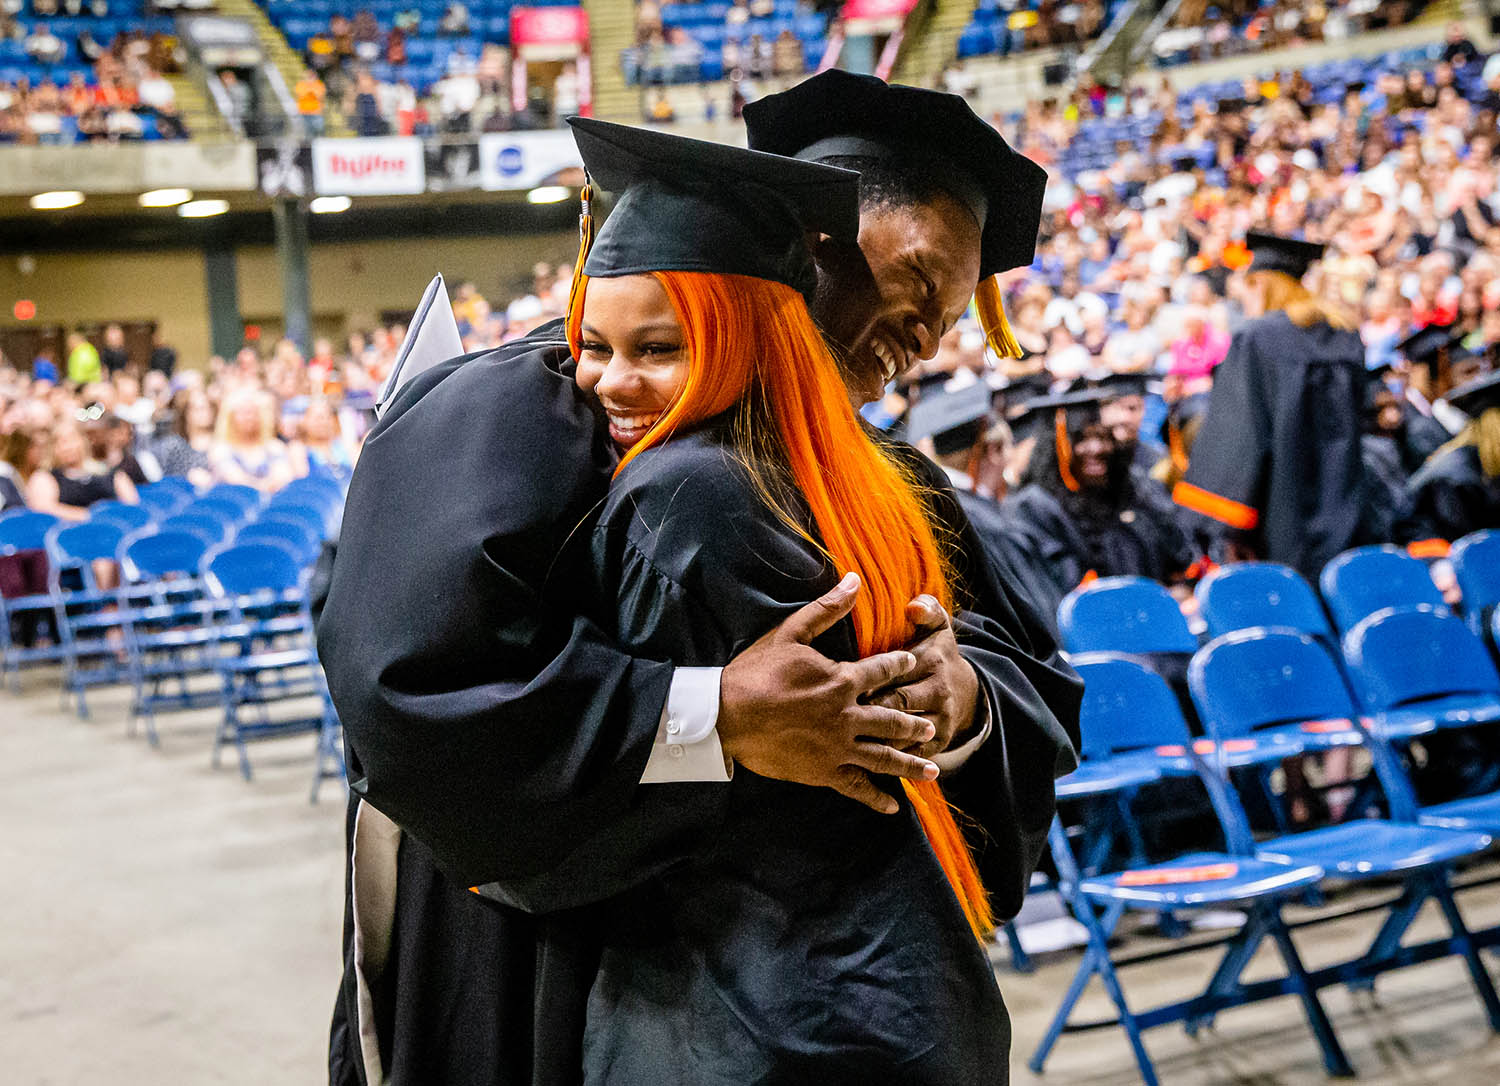 Lanphier Principal Artie Doss congratulates senior class treasurer Gabbi Sturdivant after she received her diploma during Lanphier High School's 82nd Commencement at the Bank of Springfield Center, Saturday, June 1, 2019, in Springfield, Ill. District 186 had 764 students between Lanphier, Springfield, and Southeast receive their diplomas on Saturday with the combined class being offered $43.7 million in scholarships. [Justin L. Fowler/The State Journal-Register]